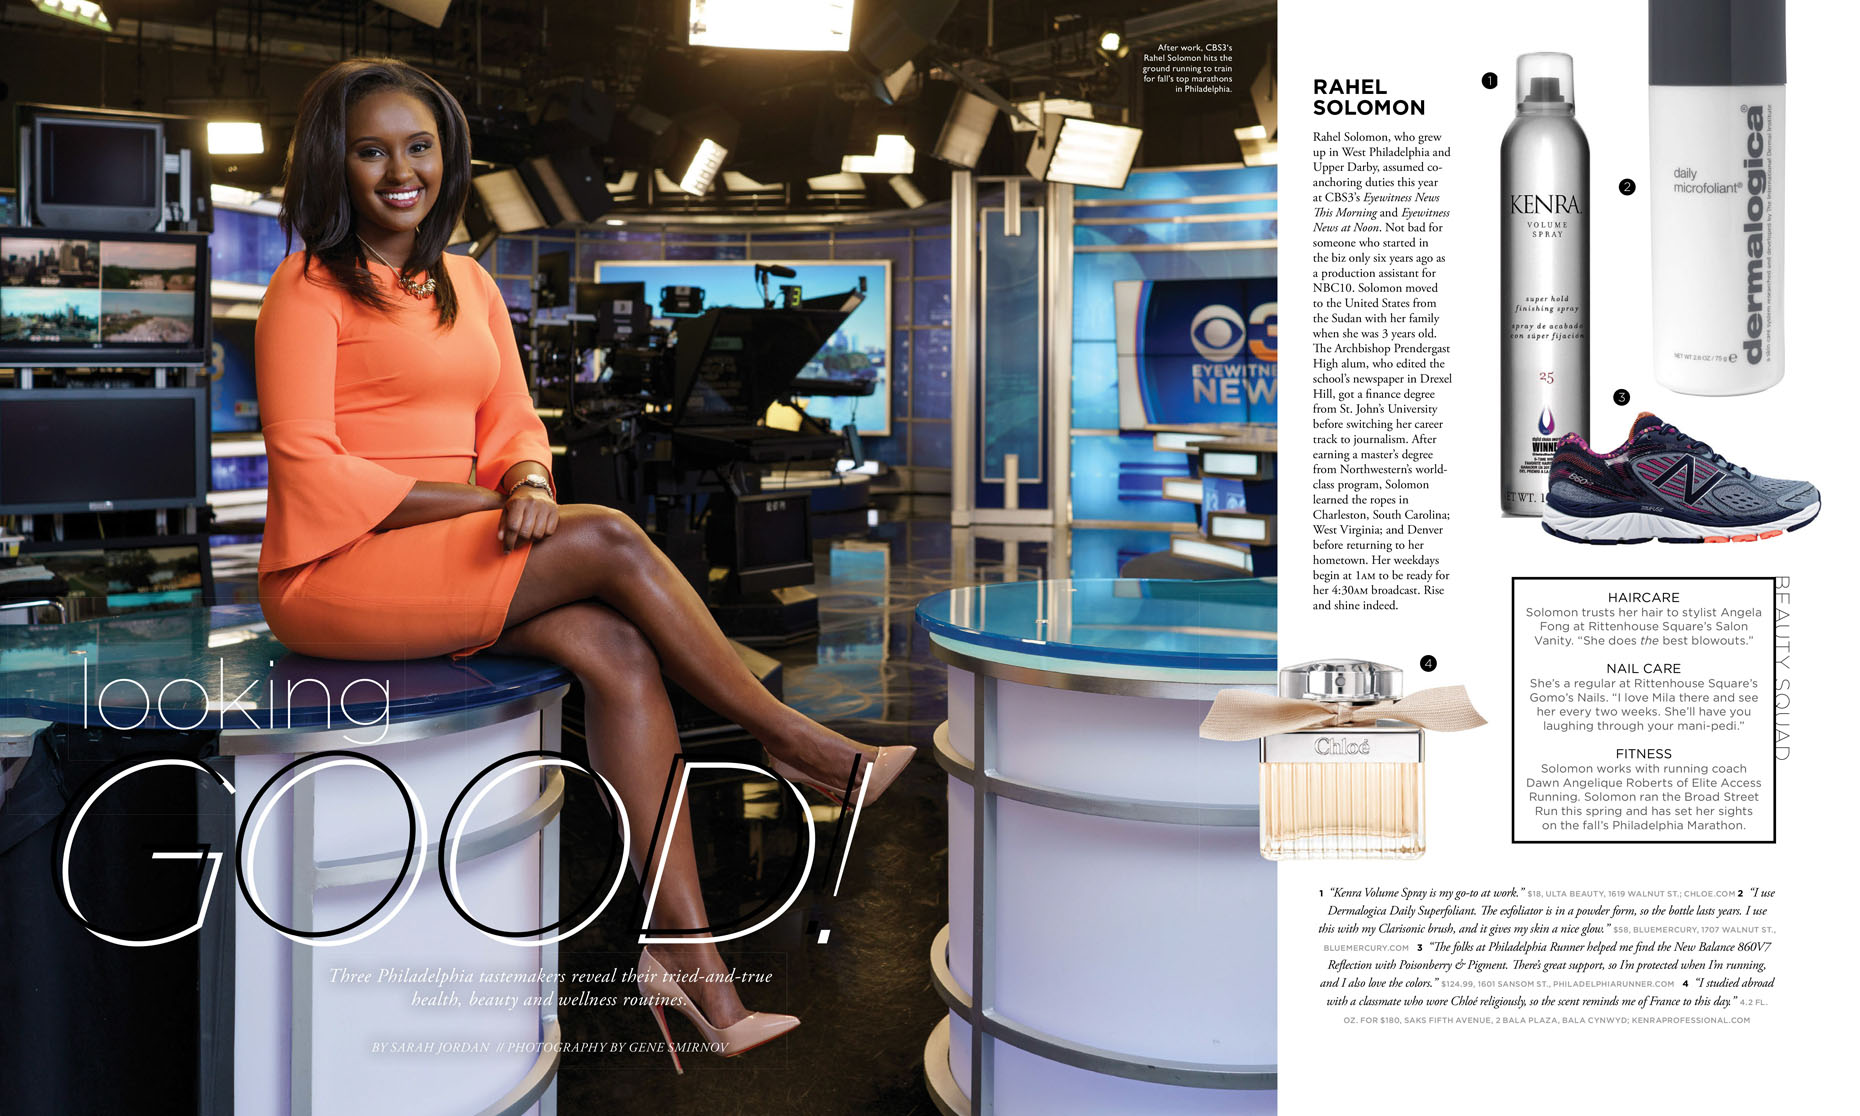 Philadelphia Styke Magazine feature story with Rahel Solomon, CBS3 anchor